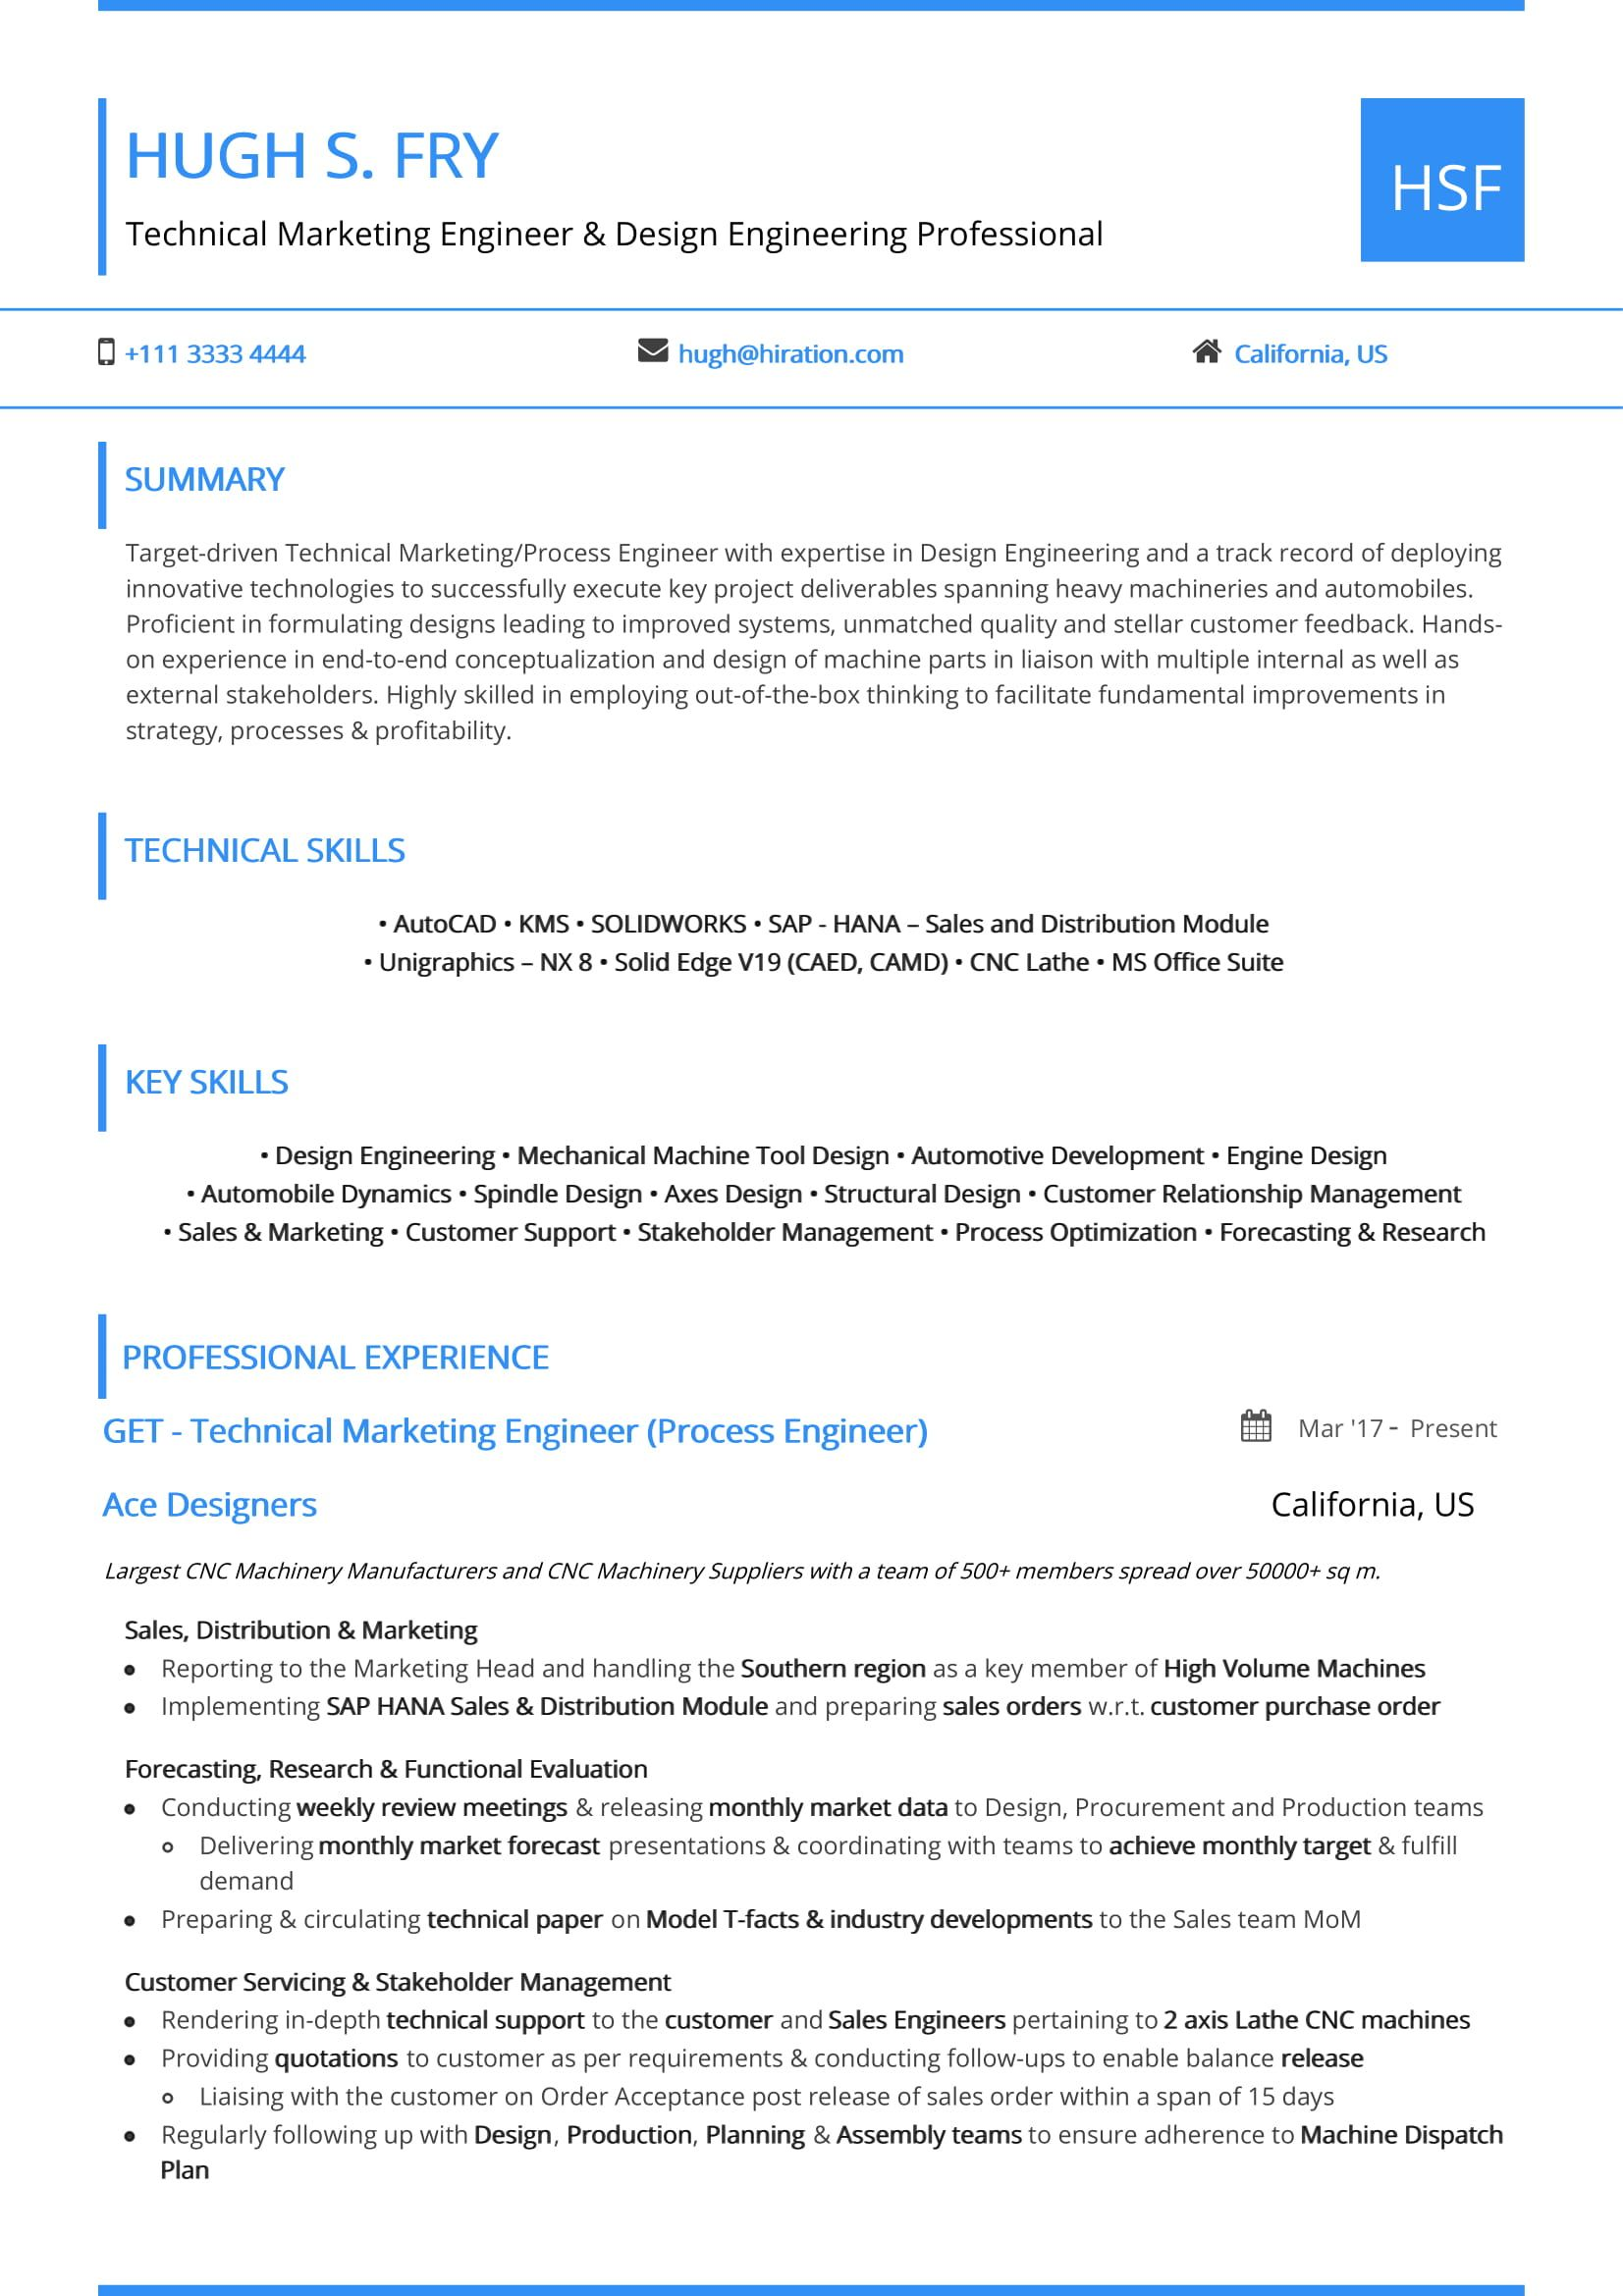 skills to put on resume the guide with sample for customer service tech nurse Resume Skills To Put On Resume For Customer Service